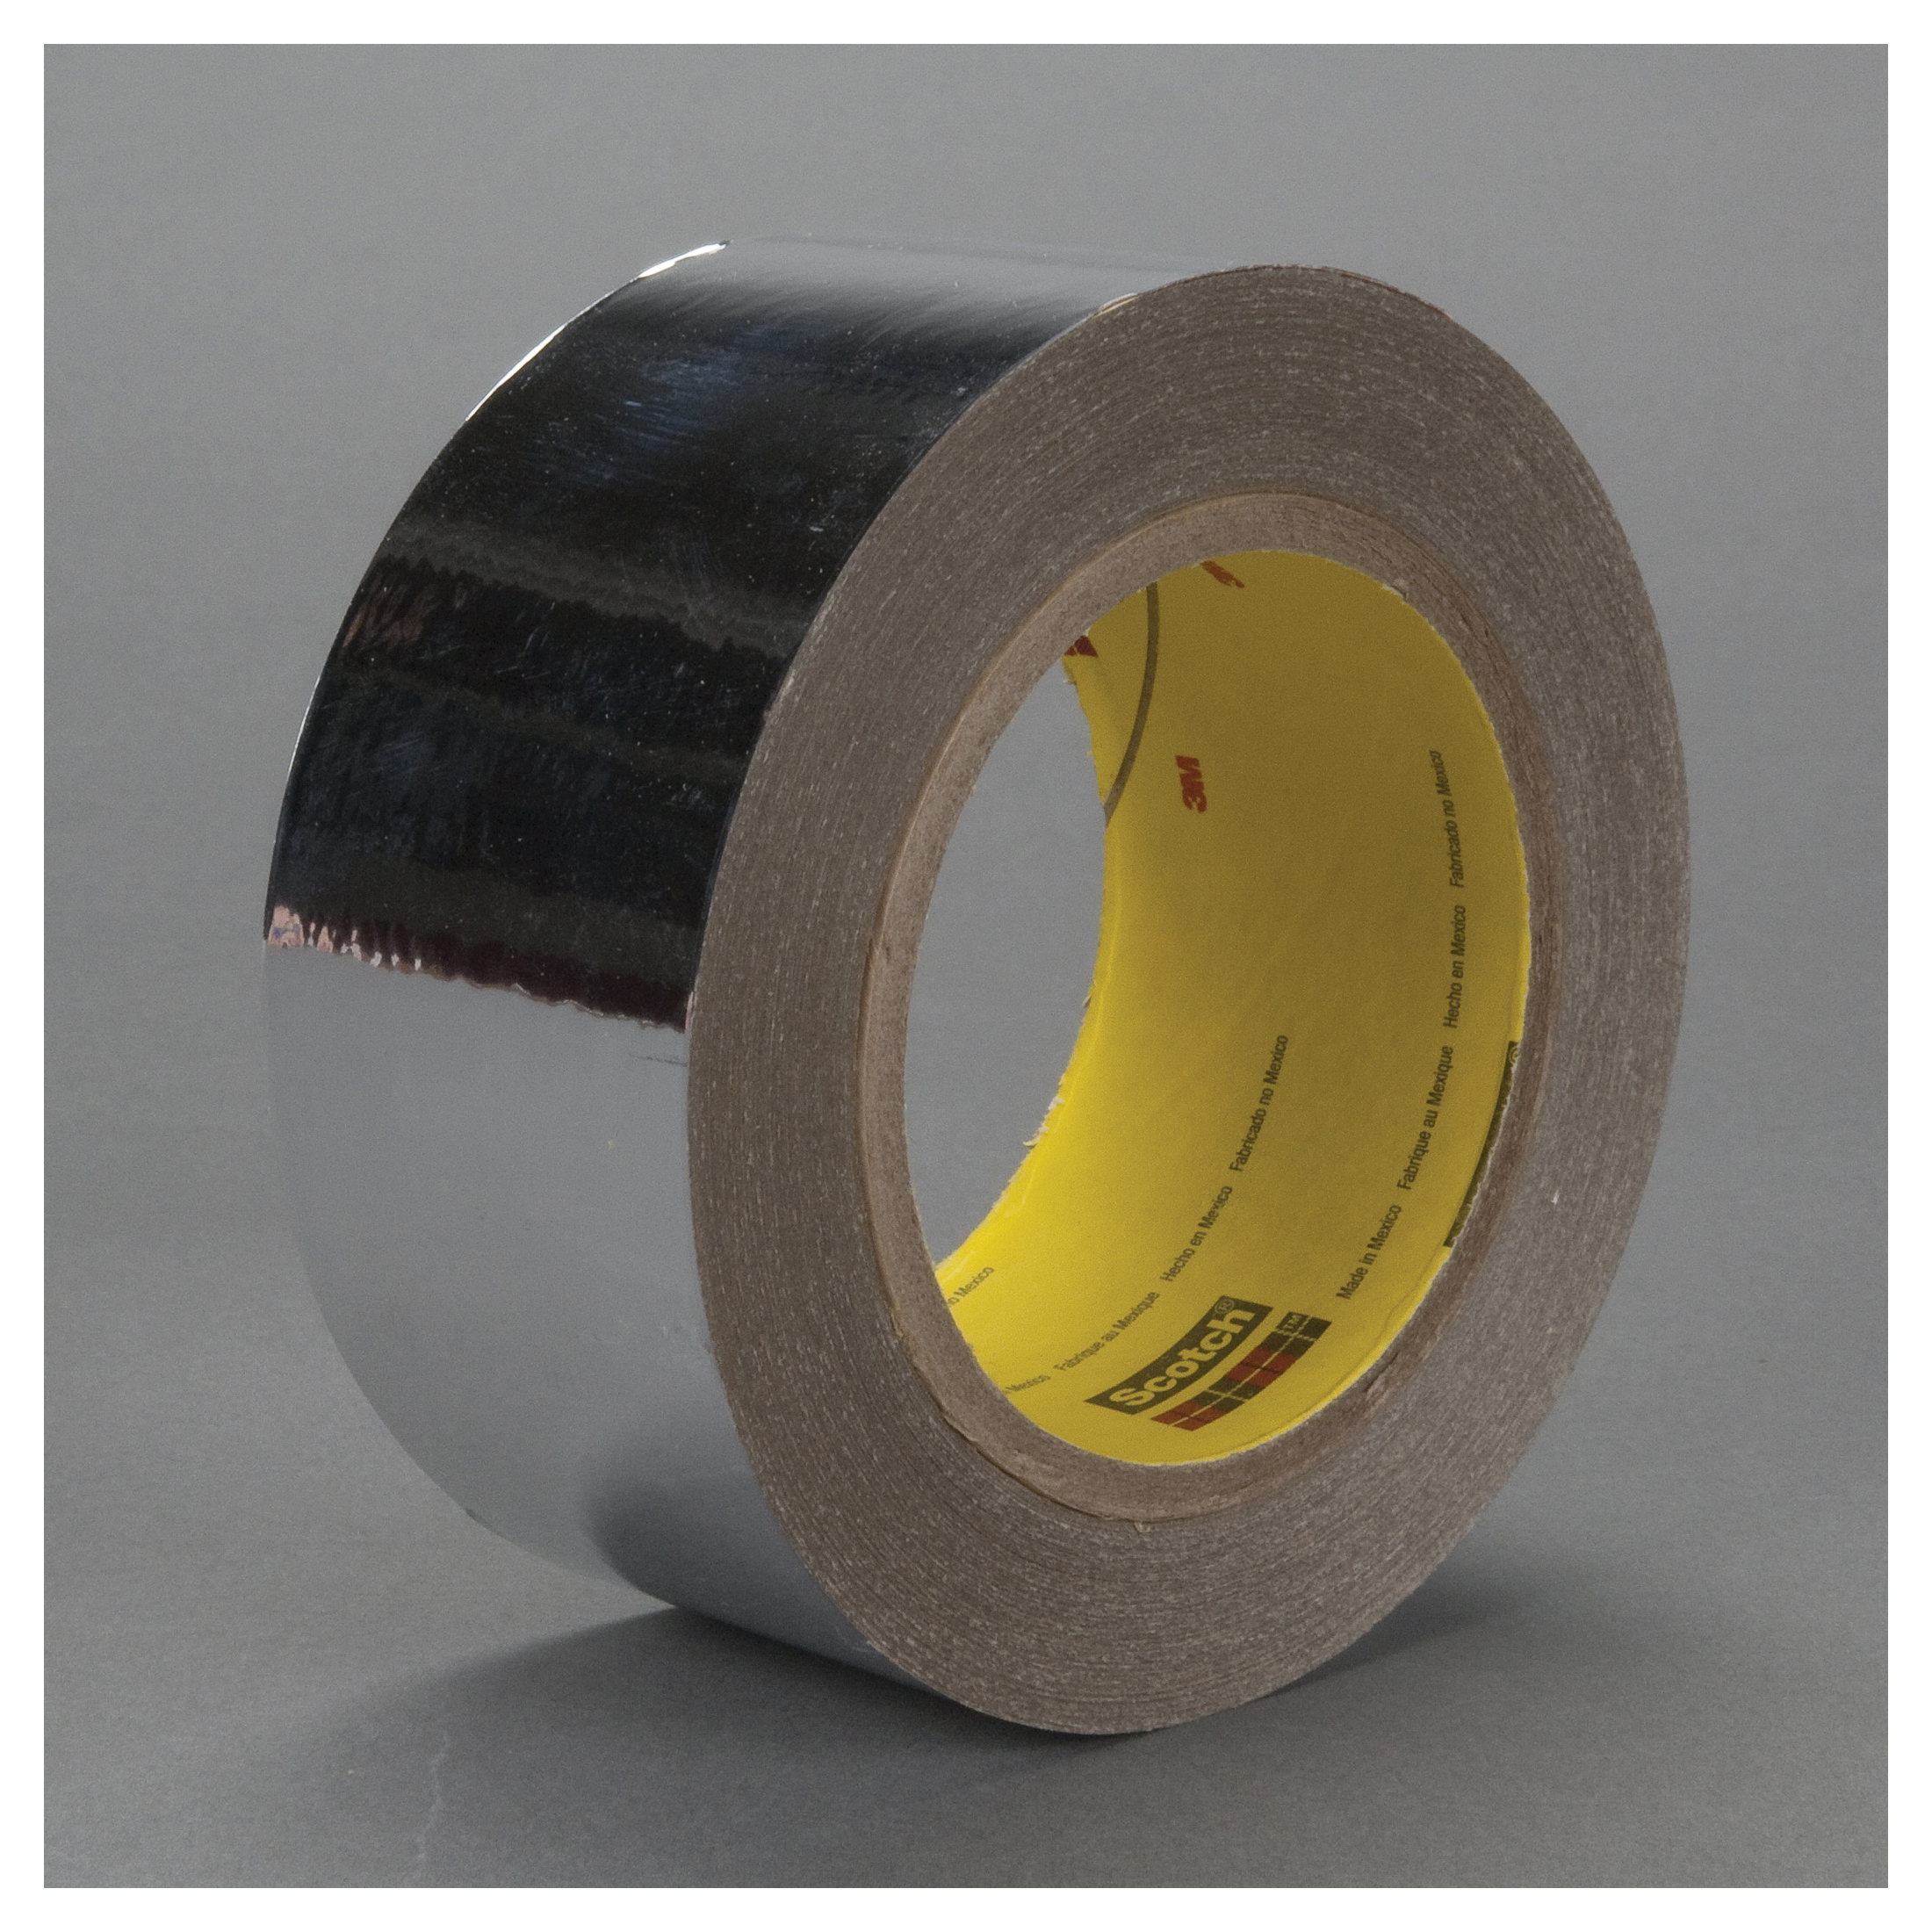 3M™ 021200-39641 Double Sided Metalized Tape, 72 yd L x 1 in W, 2 mil THK, Acrylic Adhesive, 0.9 mil Polyester Backing, Silver